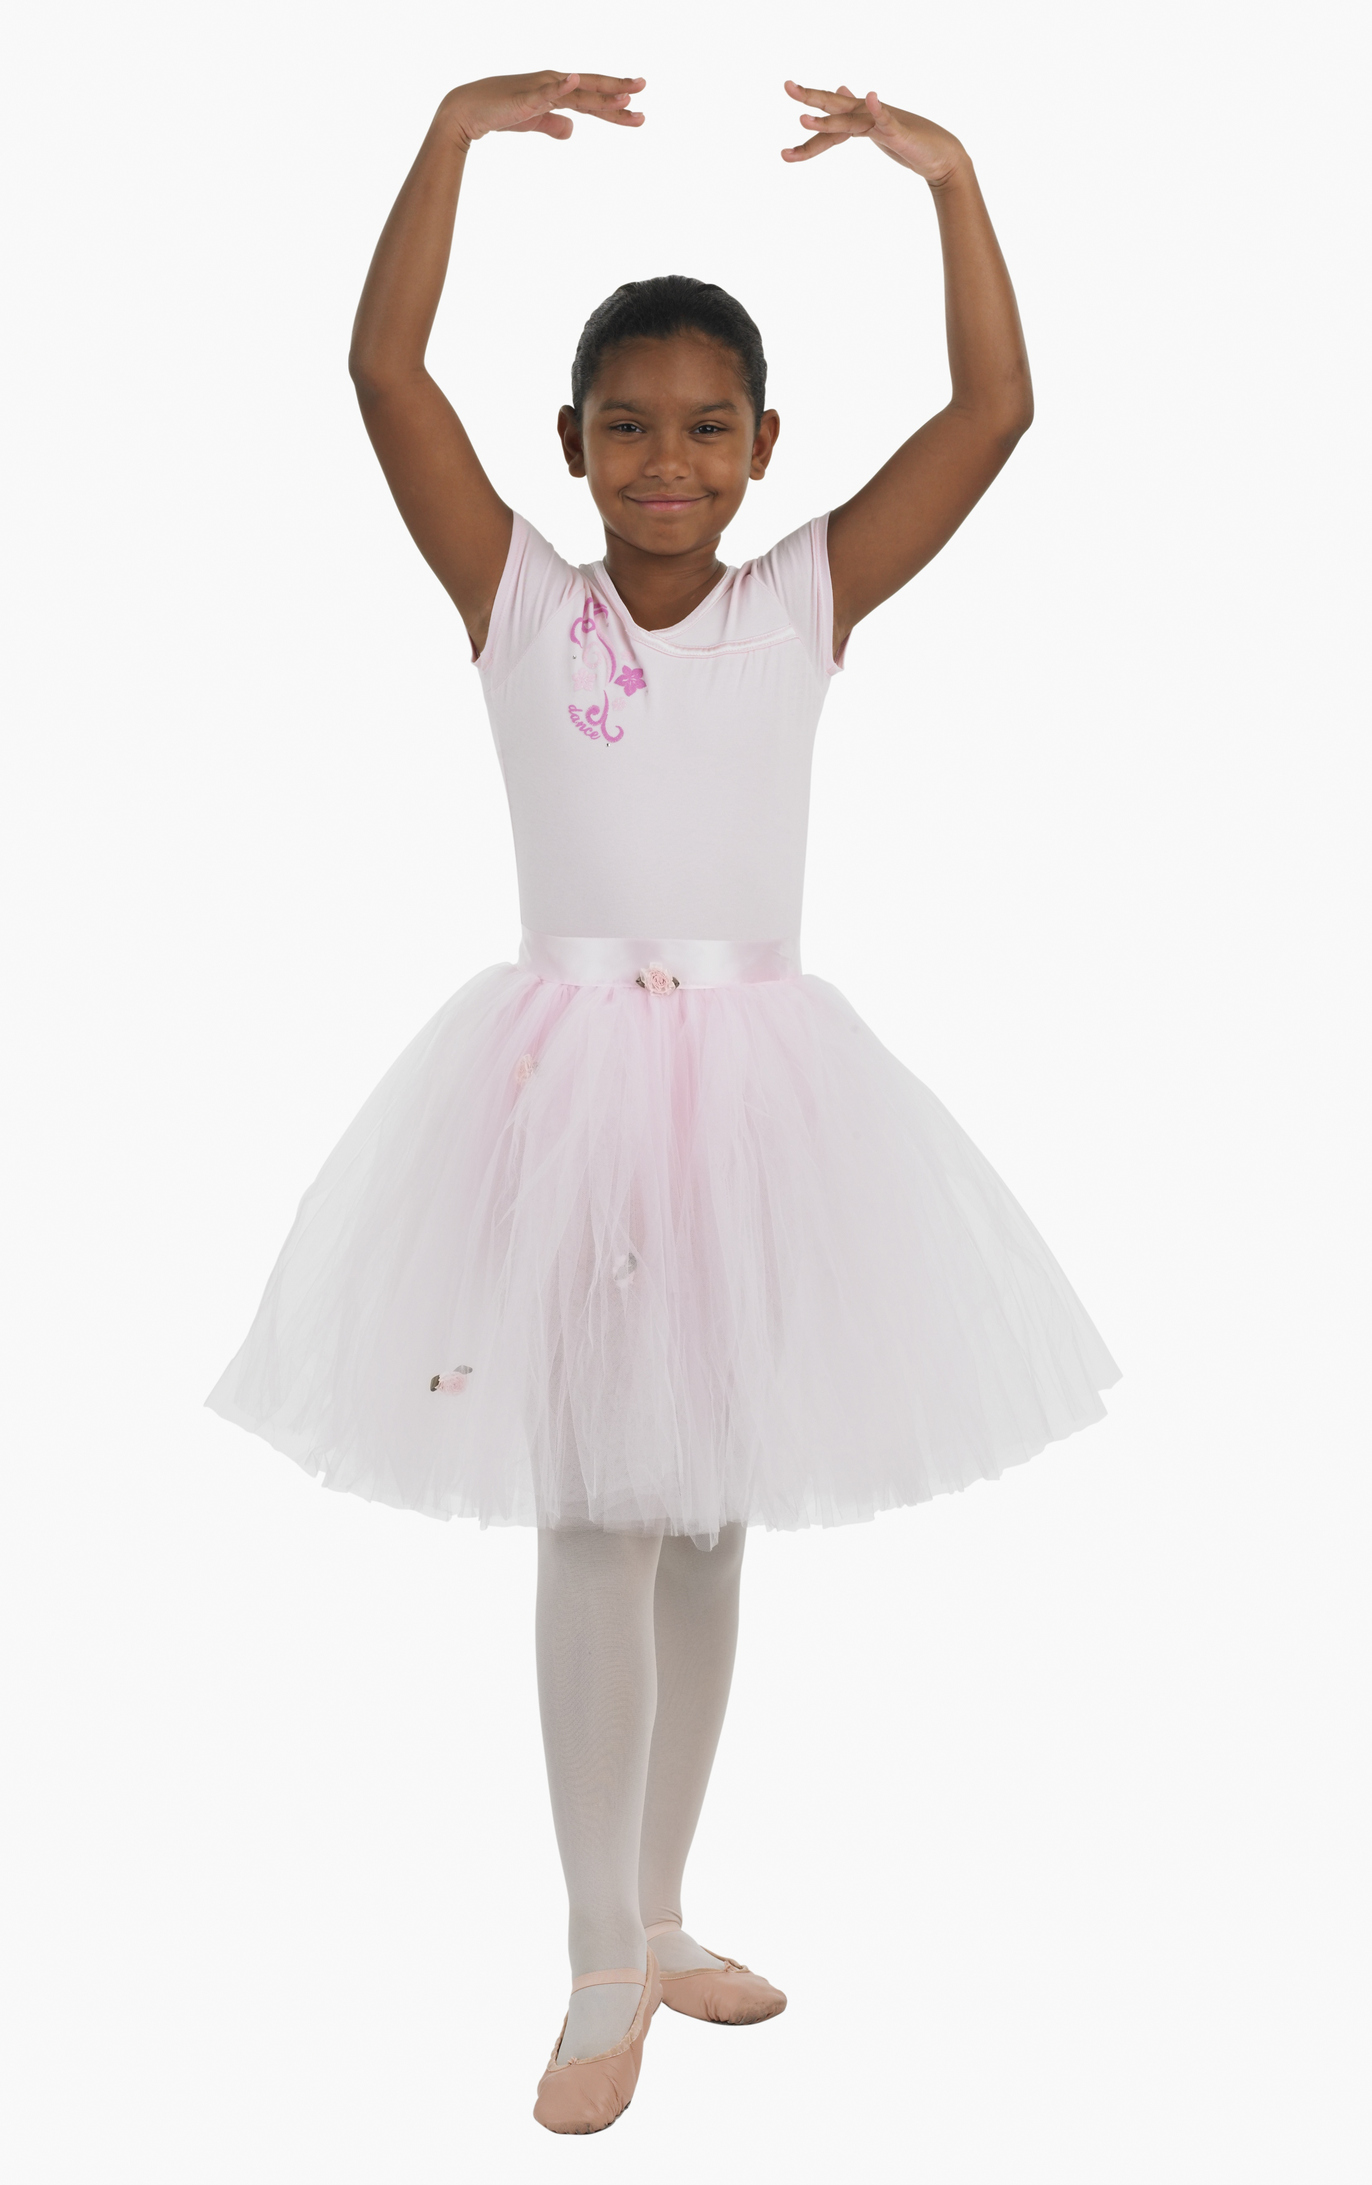 Studio shot of girl practicing ballet